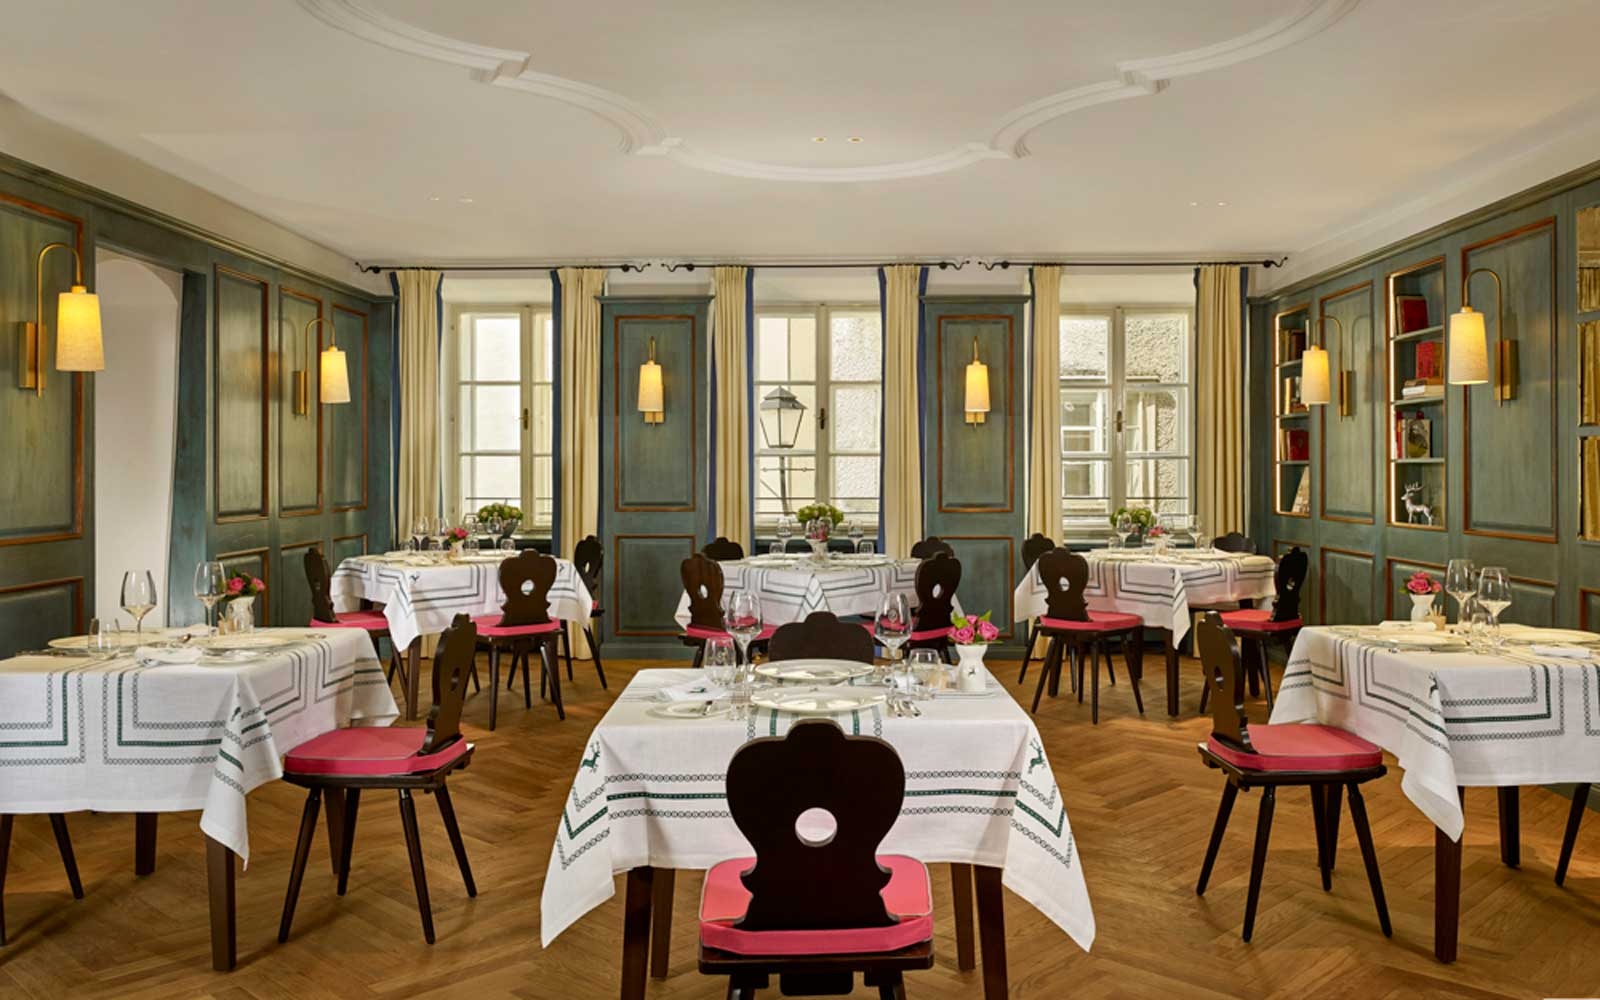 The restaurant at Hotel Goldener Hirsch in Salzburg, Austria